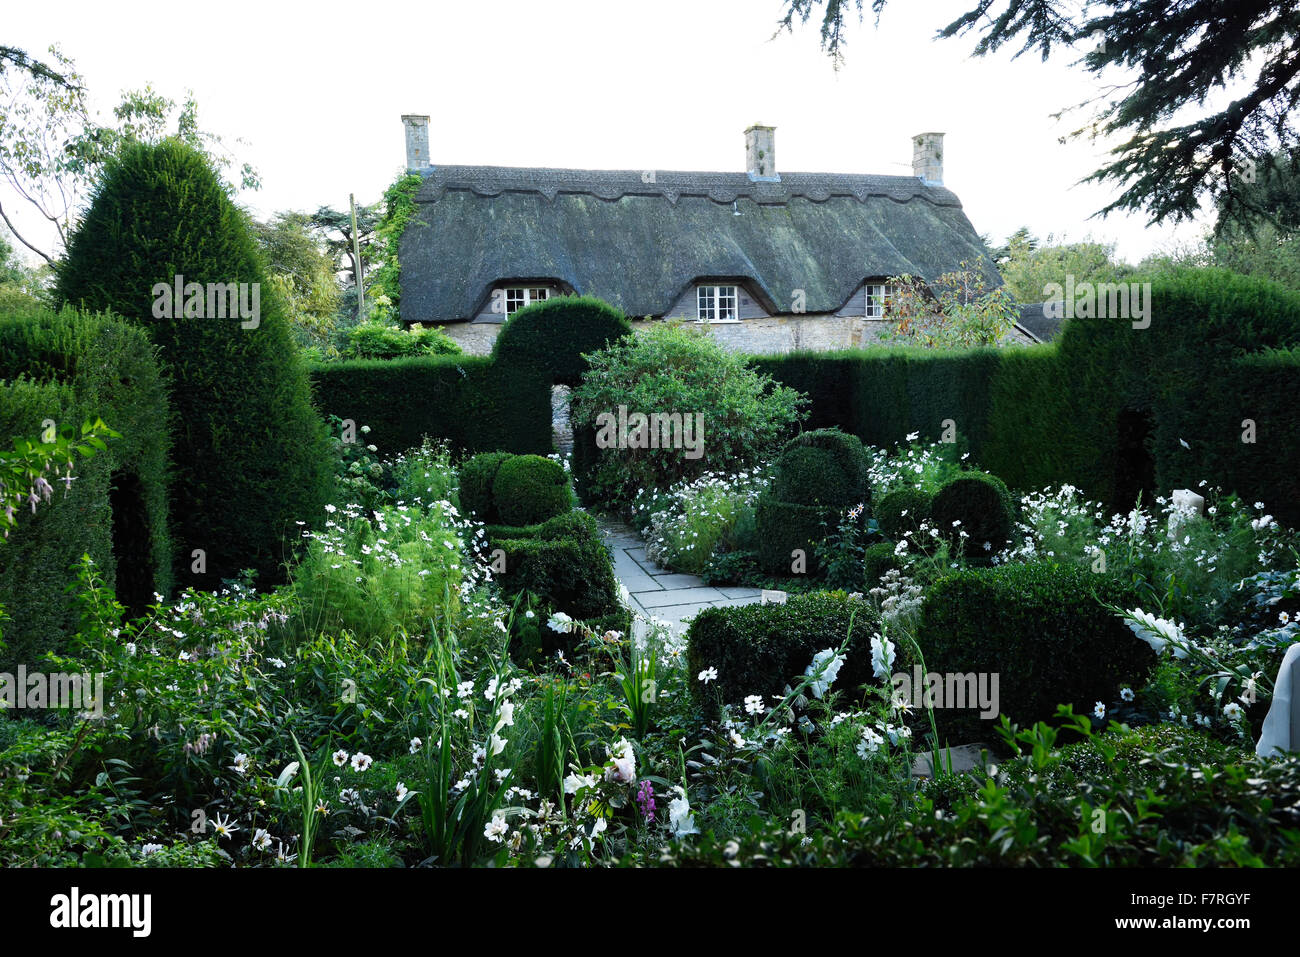 The summer at Hidcote, Gloucestershire. Hidcote is a world-famous Arts and Crafts garden, created by the American - Stock Image